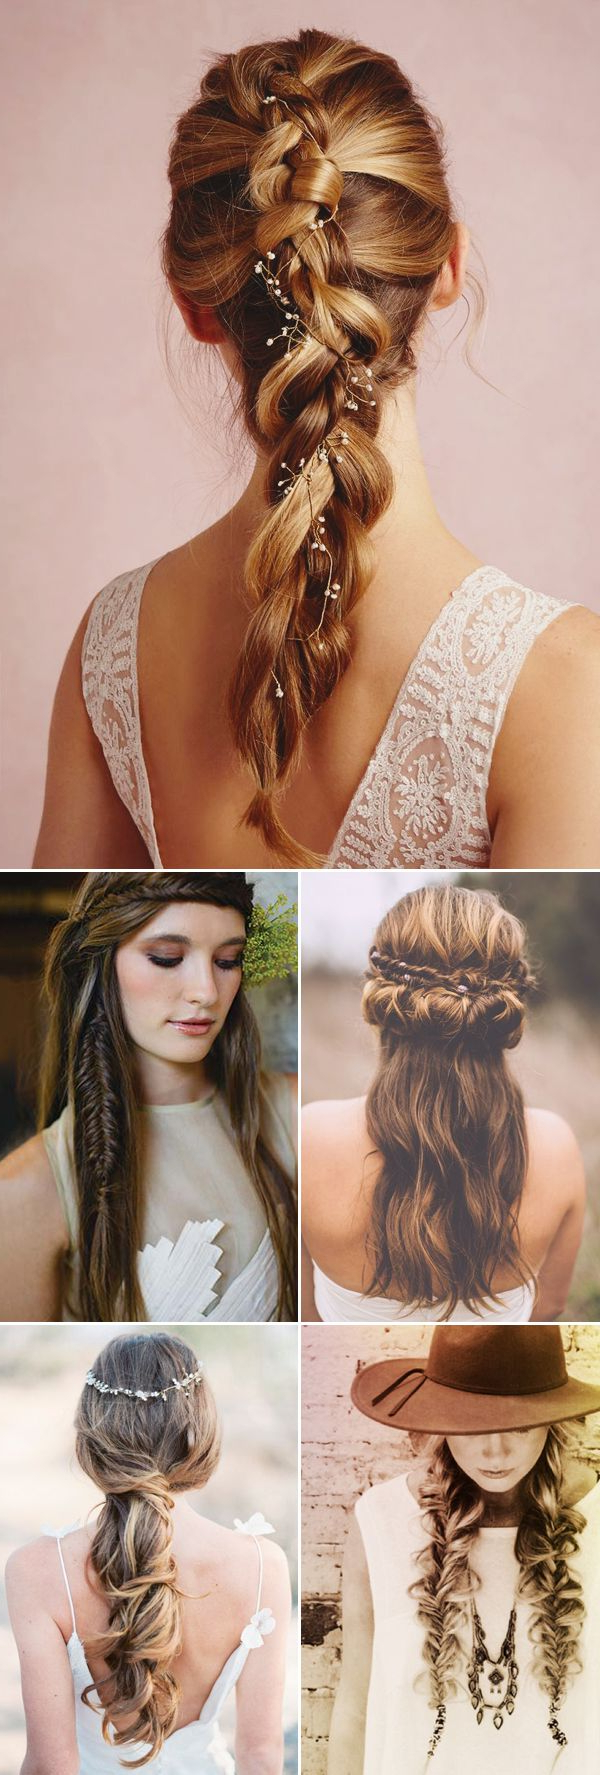 28 Fancy Braided Hairstyles For Long Hair 2016 – Pretty Designs Intended For Most Recent Fancy Braided Hairstyles (View 12 of 20)